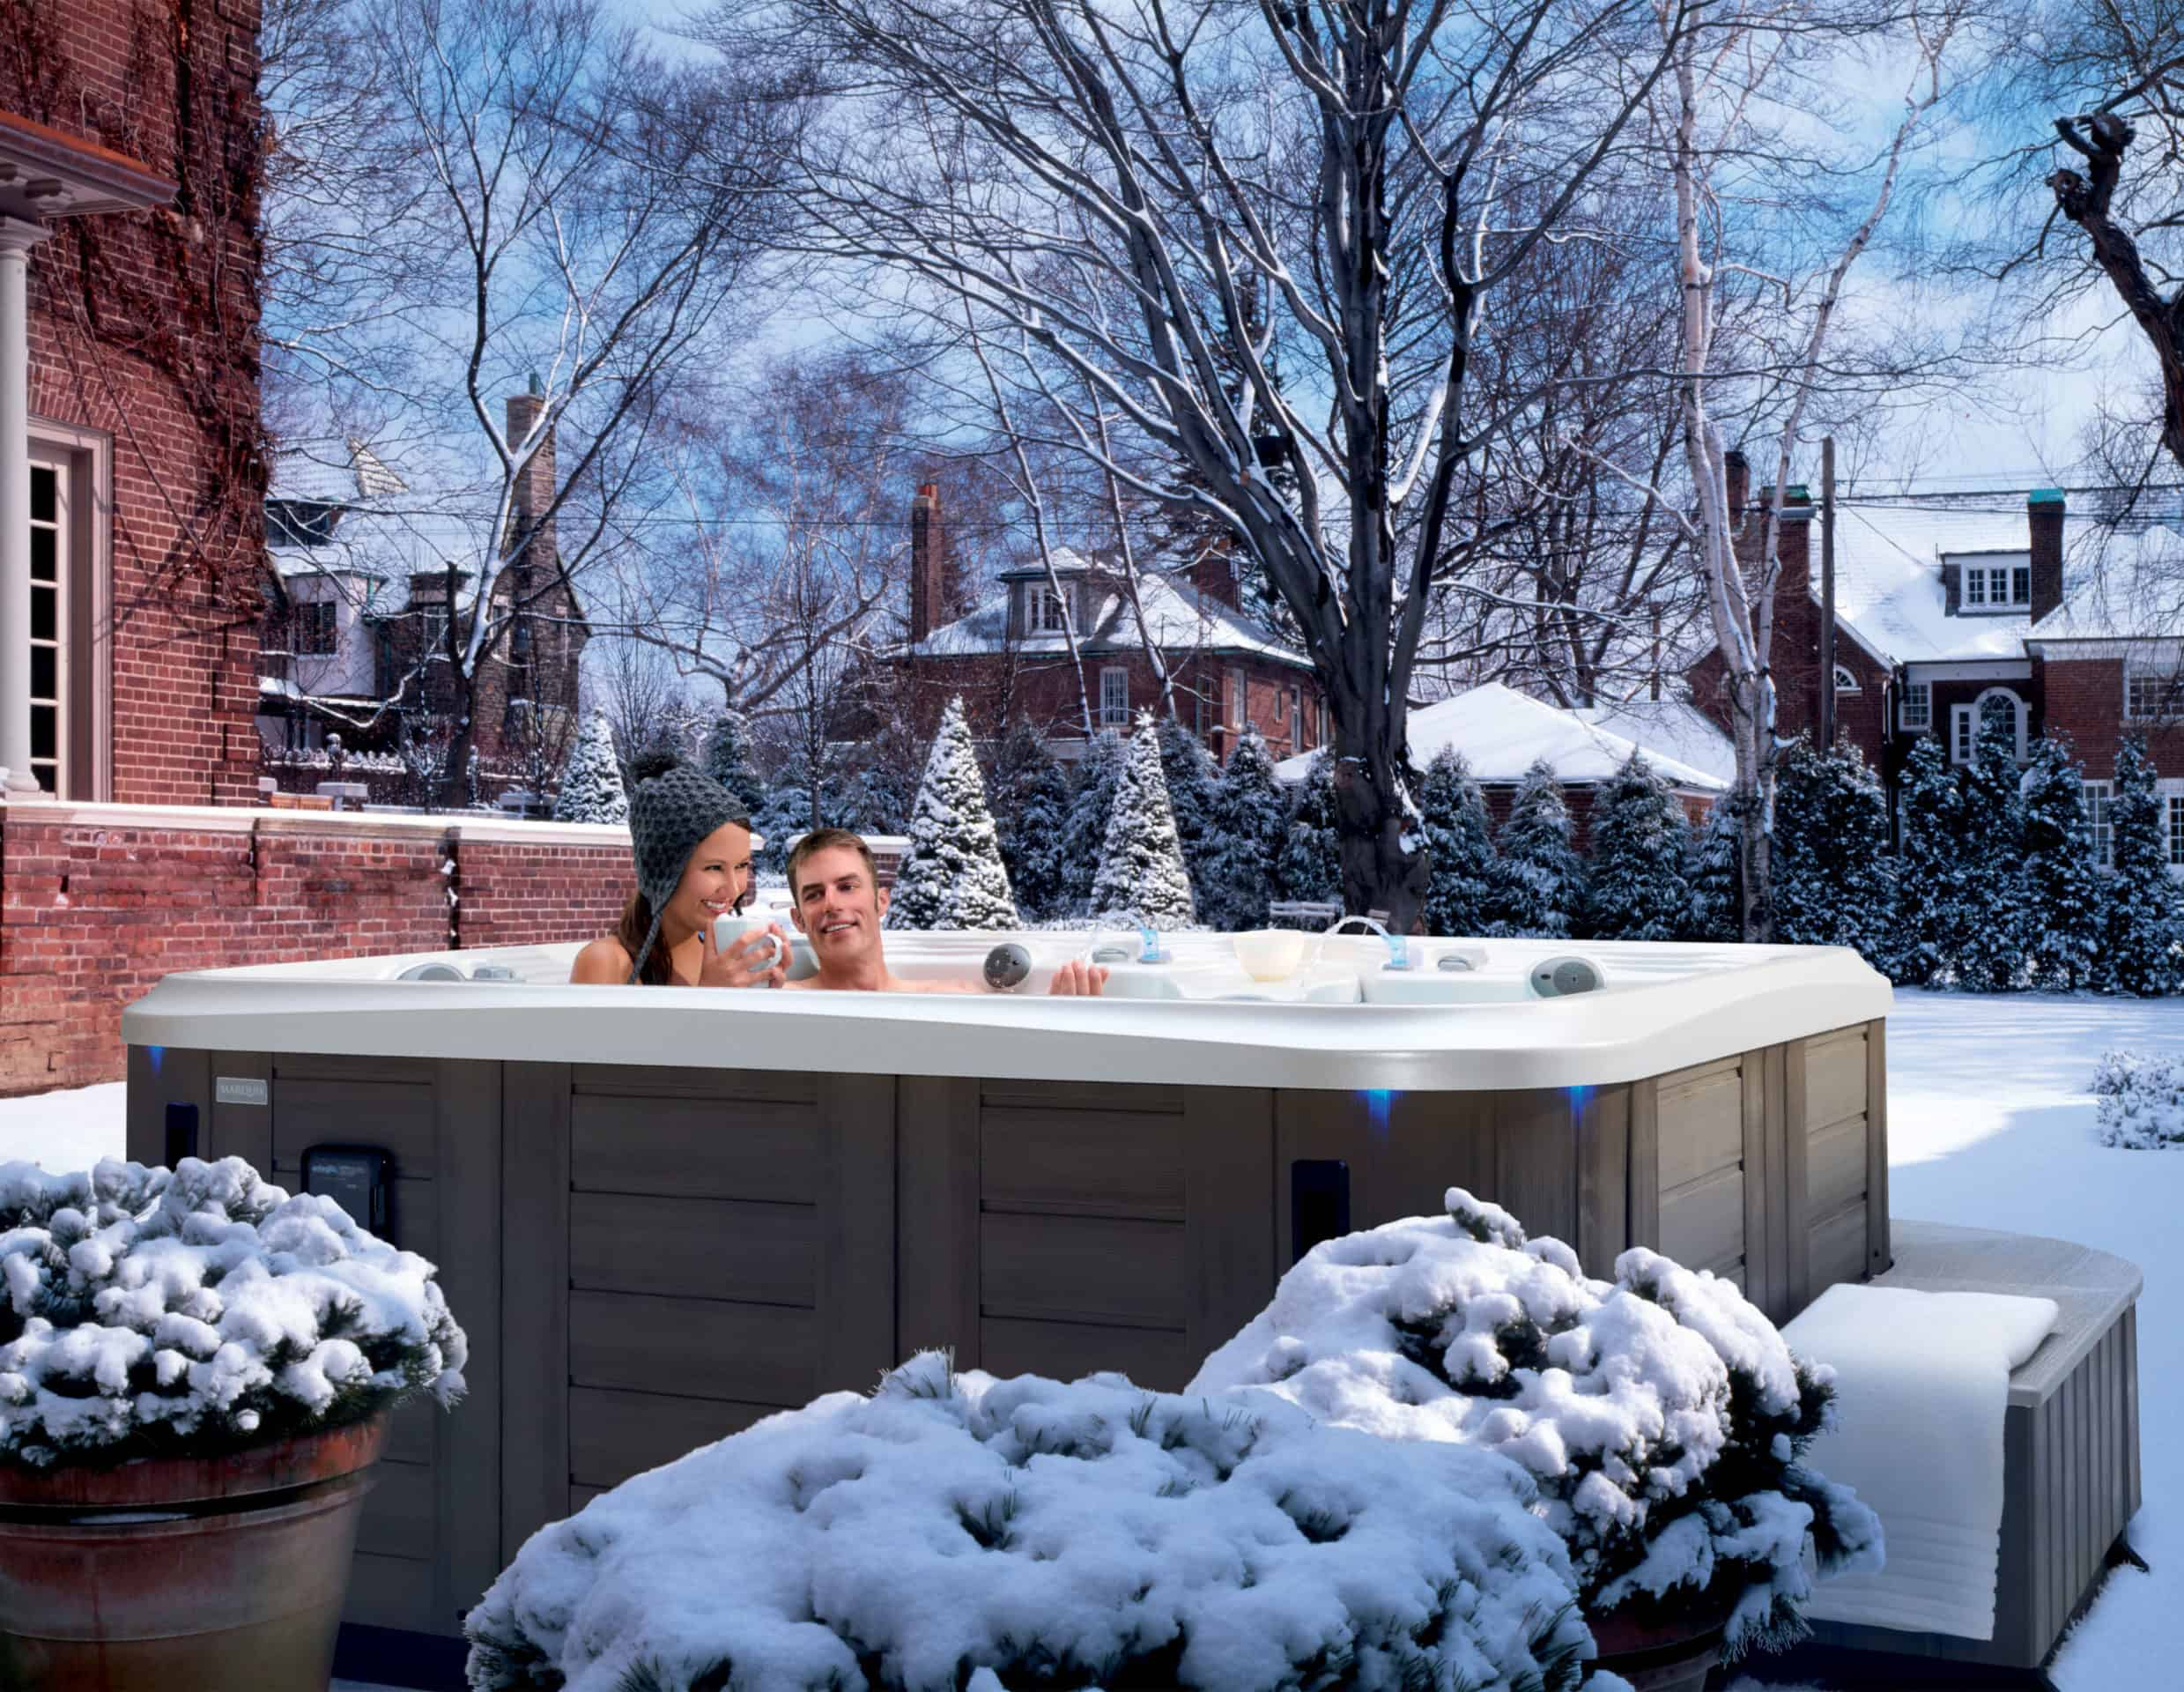 Hot tub for the sold season